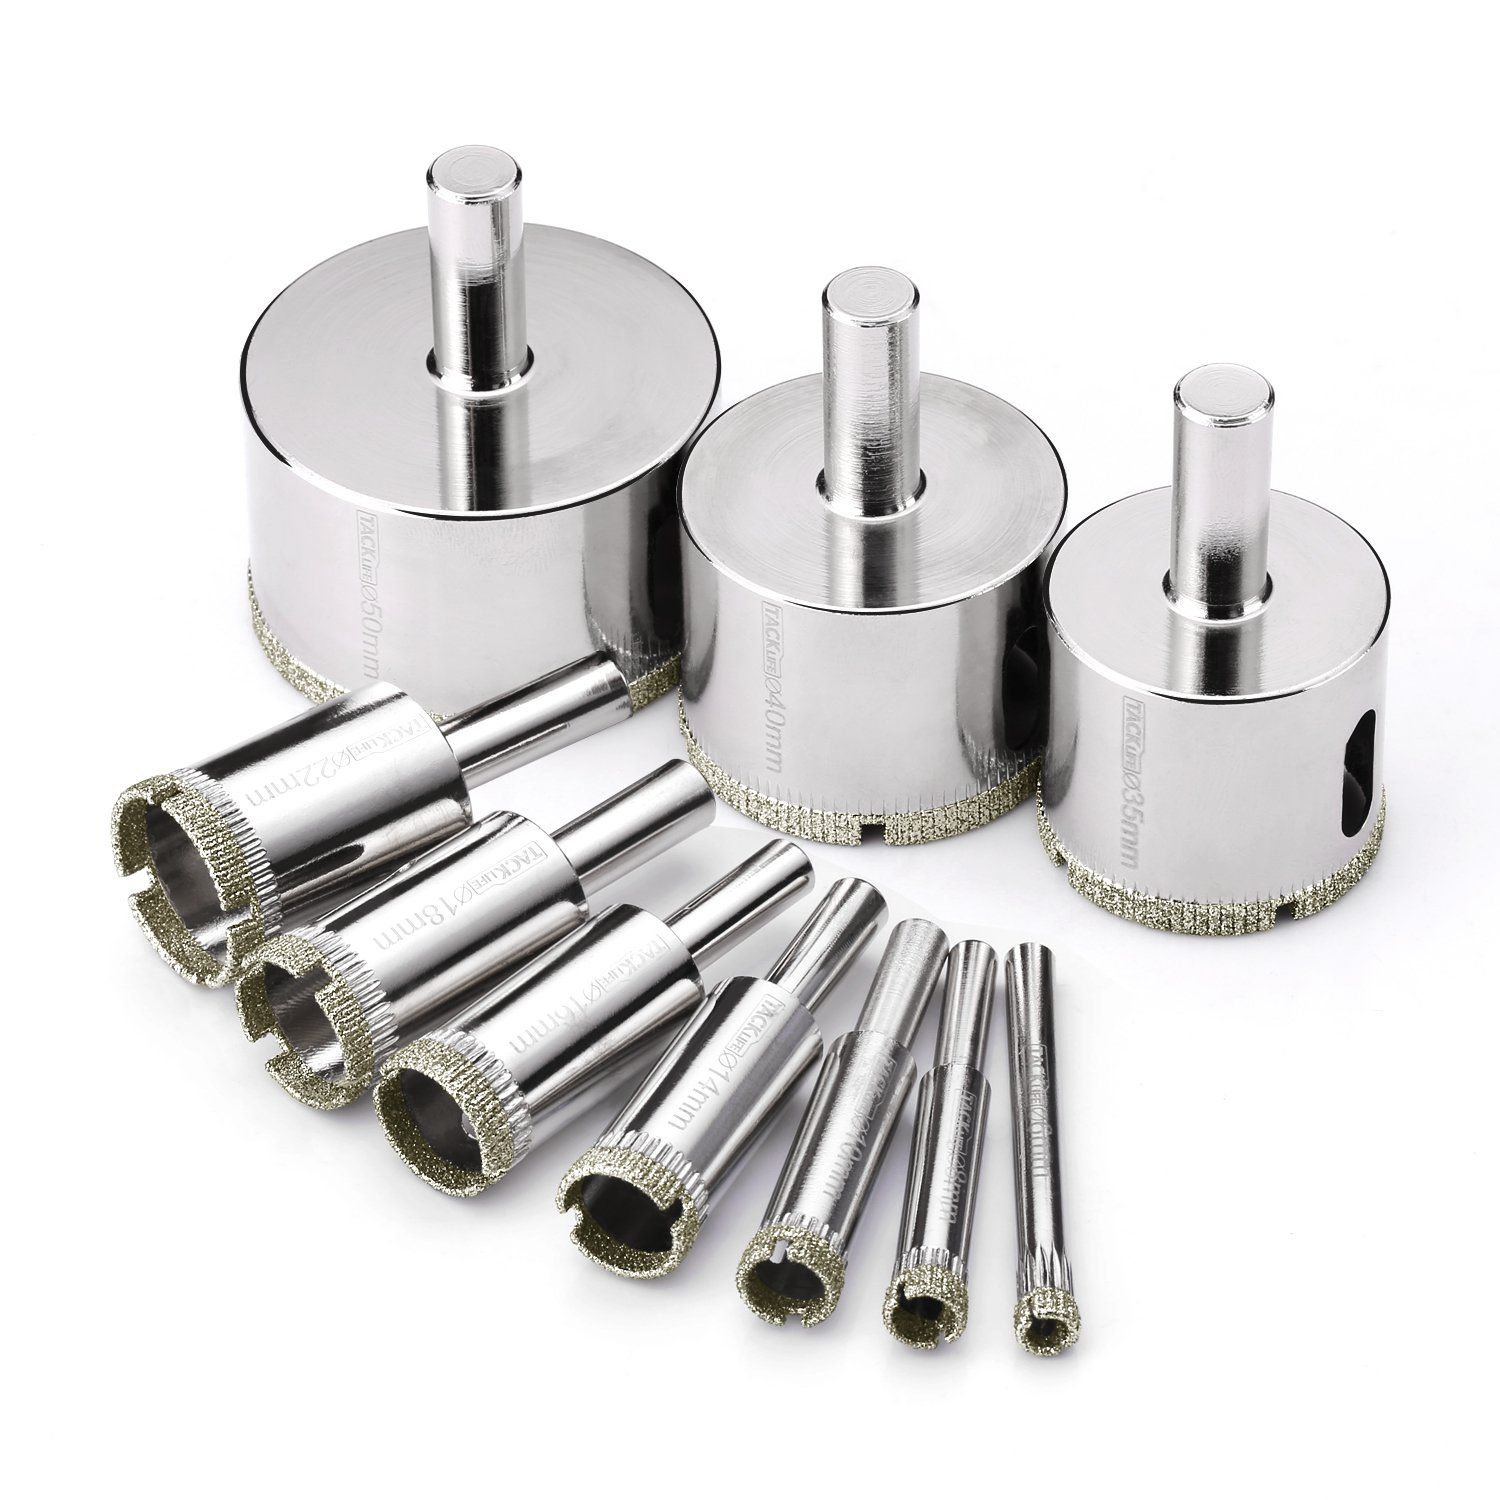 Tacklife AHS02C Diamond Drill Bits Hole Saw Drill Bits Hollow Extractor Remover Set Tools with 10 Packs, Diamond Coating, Carbon Steel for Glass, Ceramics, Porcelain, Ceramic Tile, Marble | 6-50mm